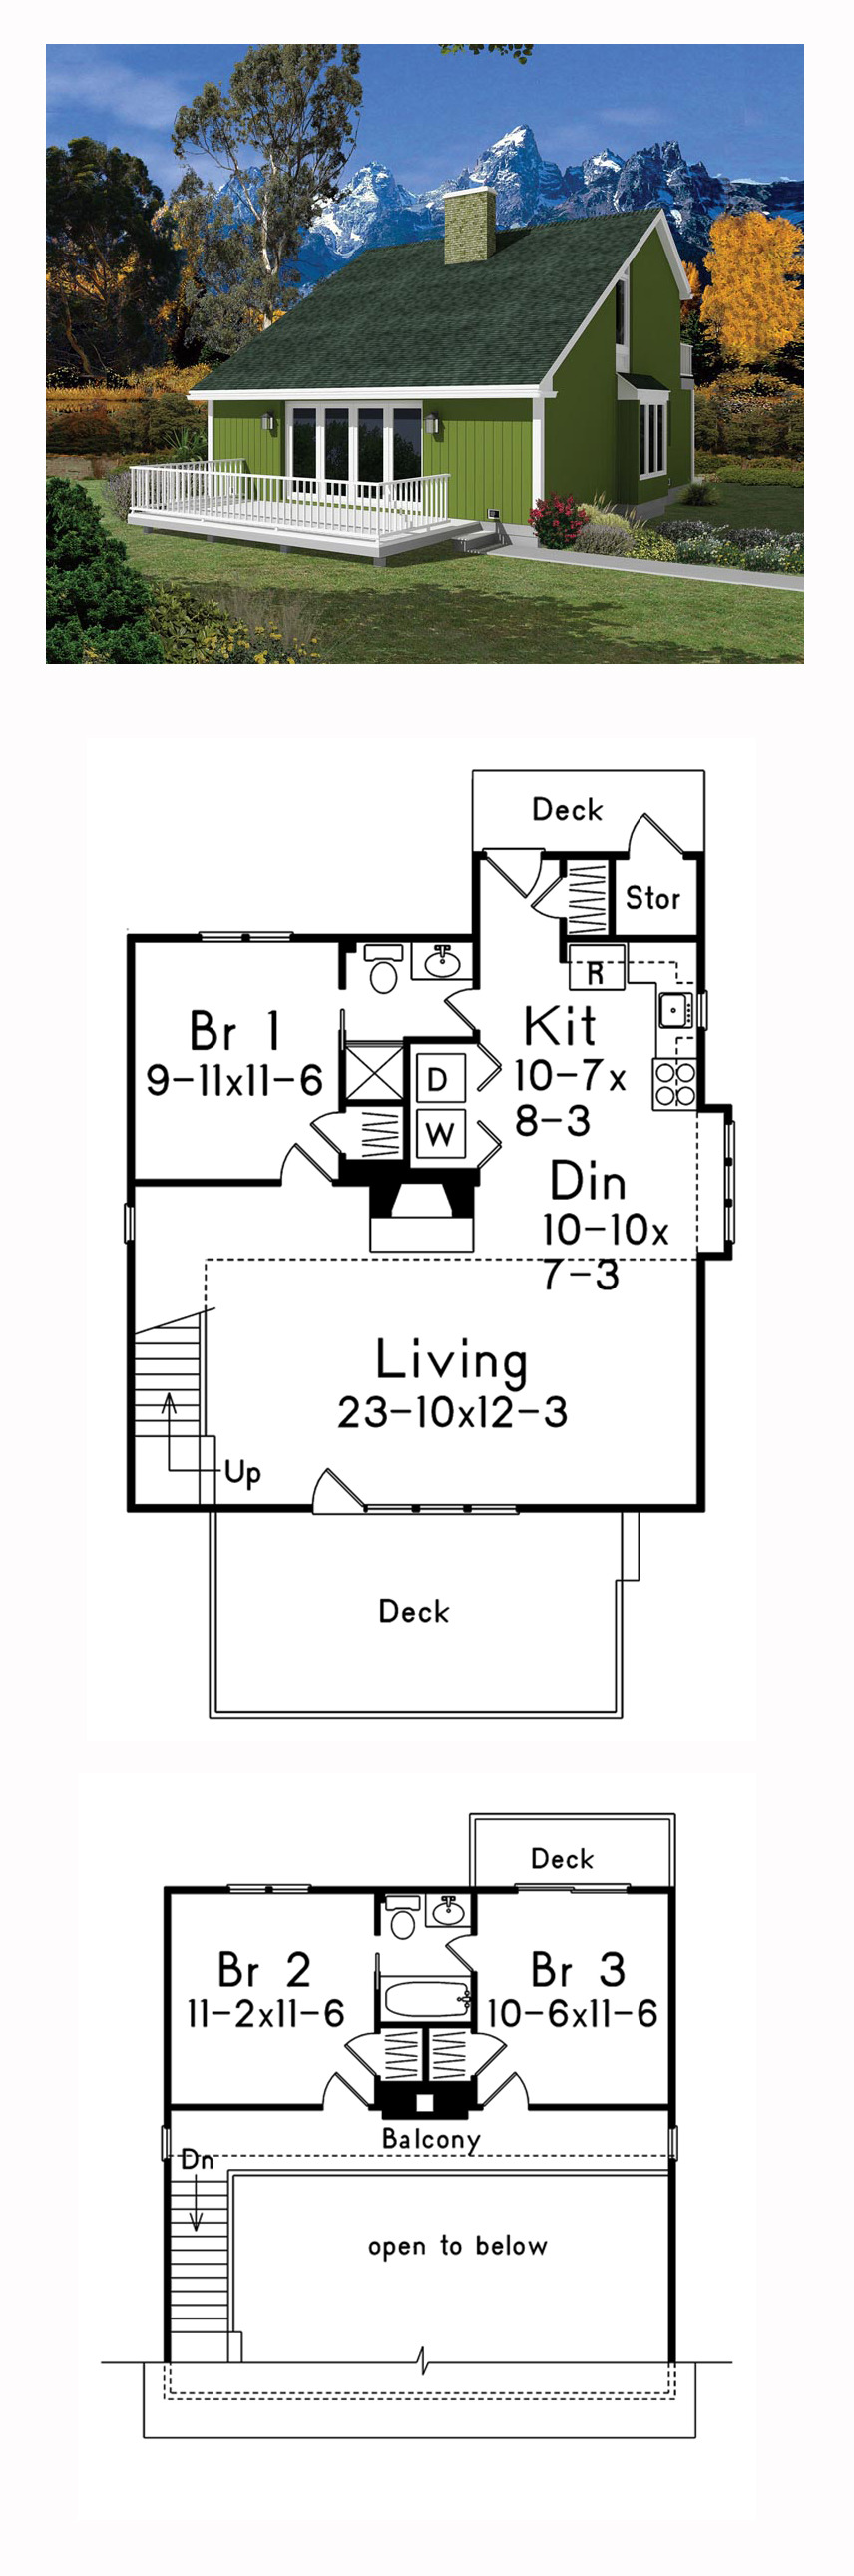 small salt box house design saltbox plan total living area sq ft phenomenal home and interior